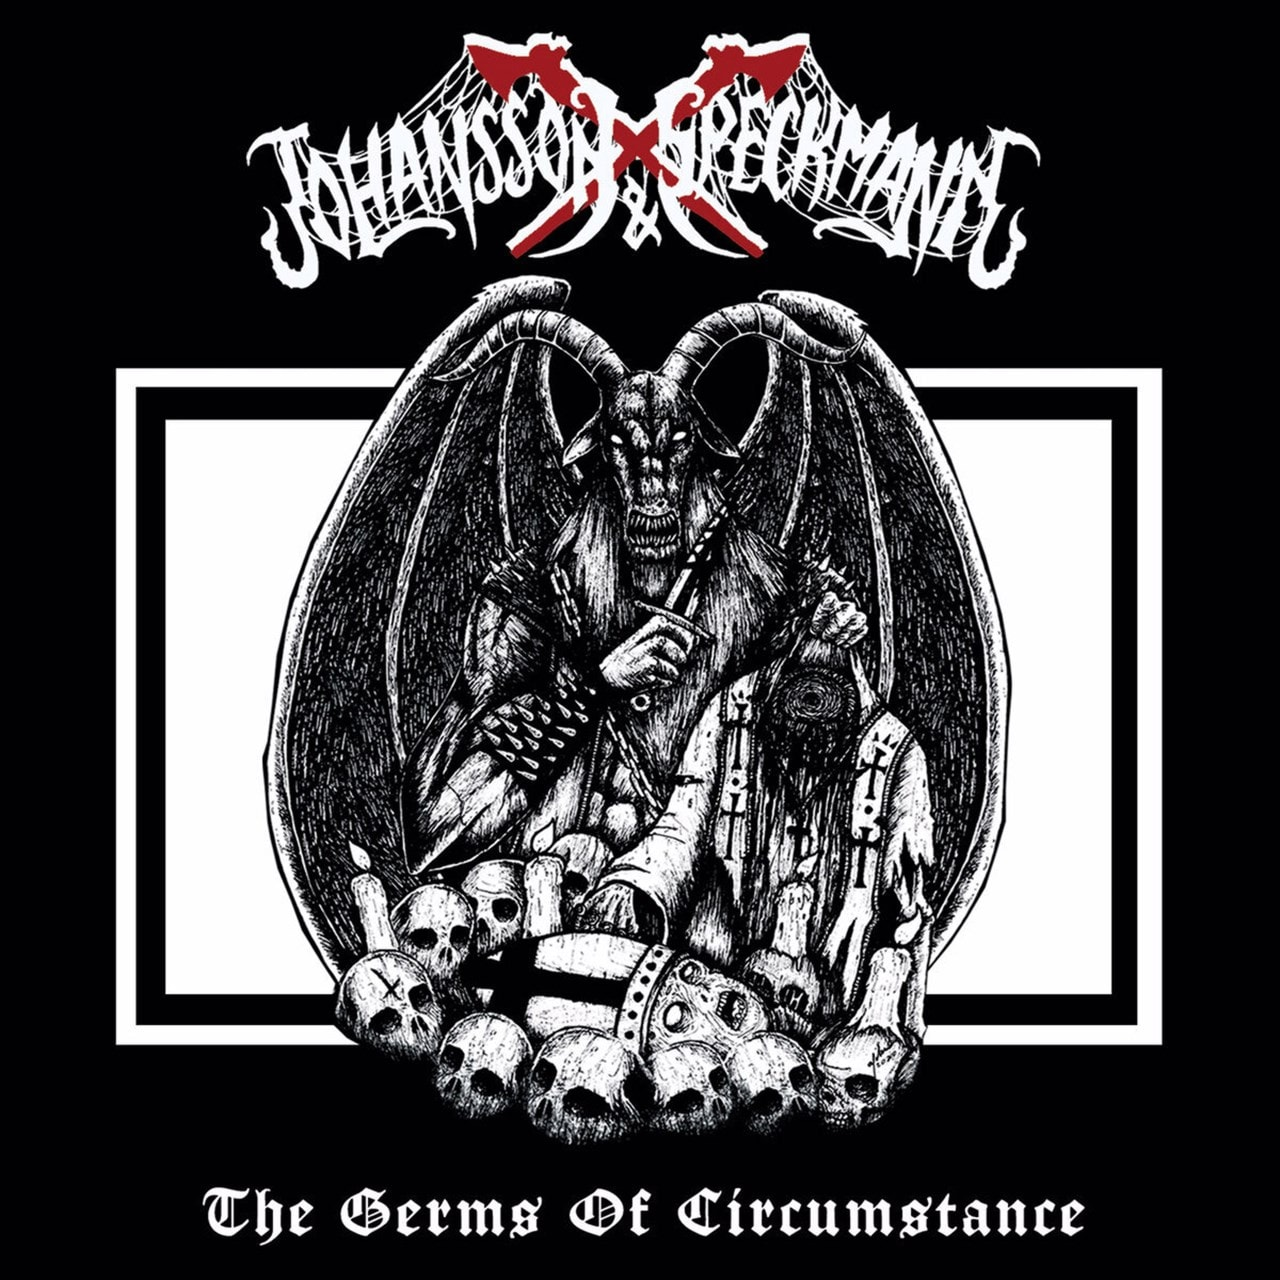 Ther Germs of Circumstance - 1